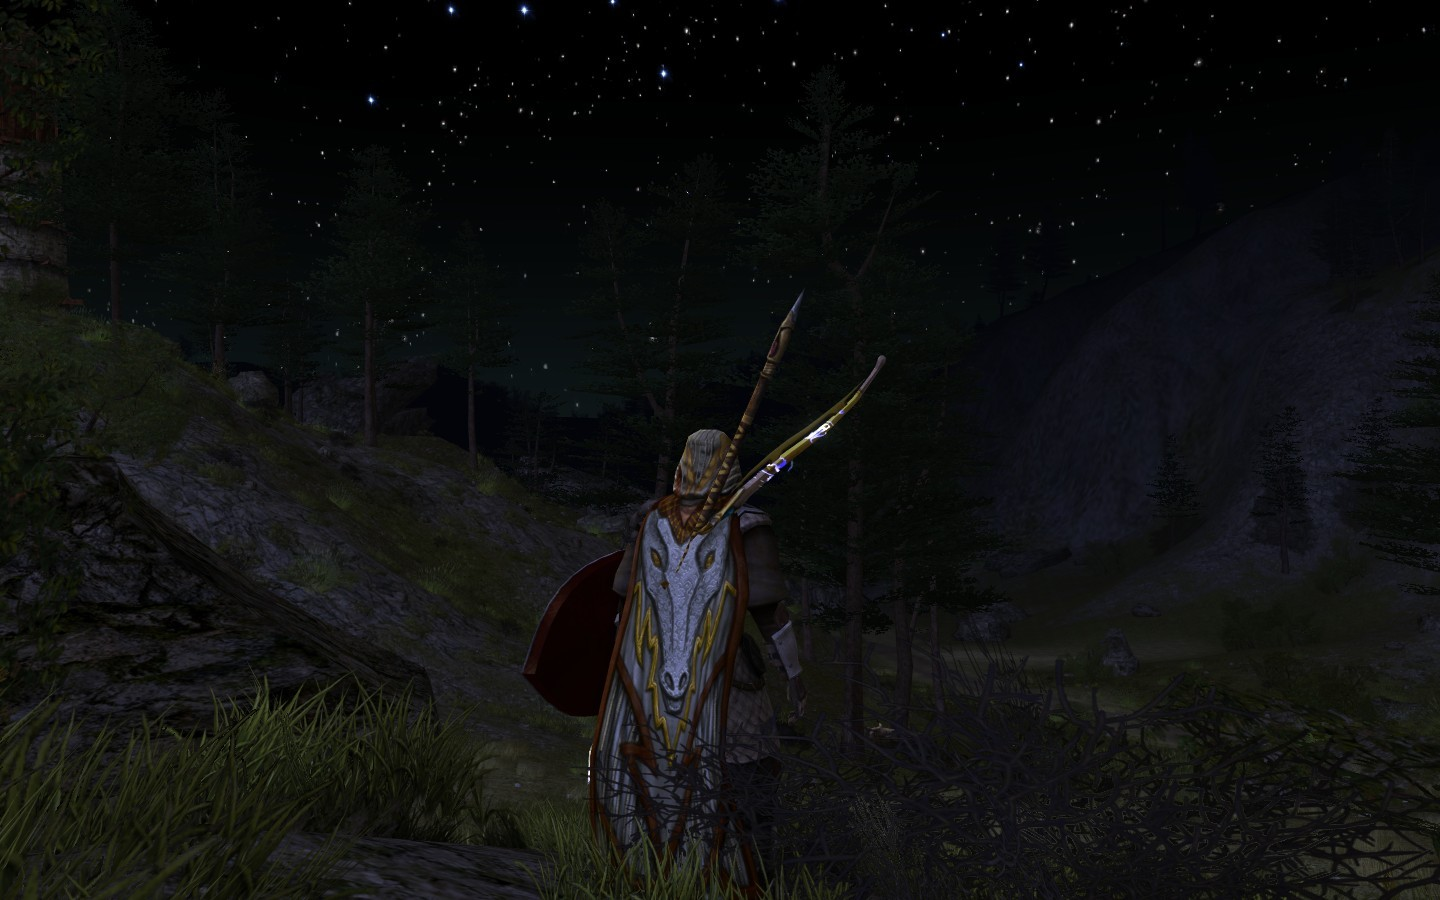 Lord of the Rings Online - Something stirs in the night air ...